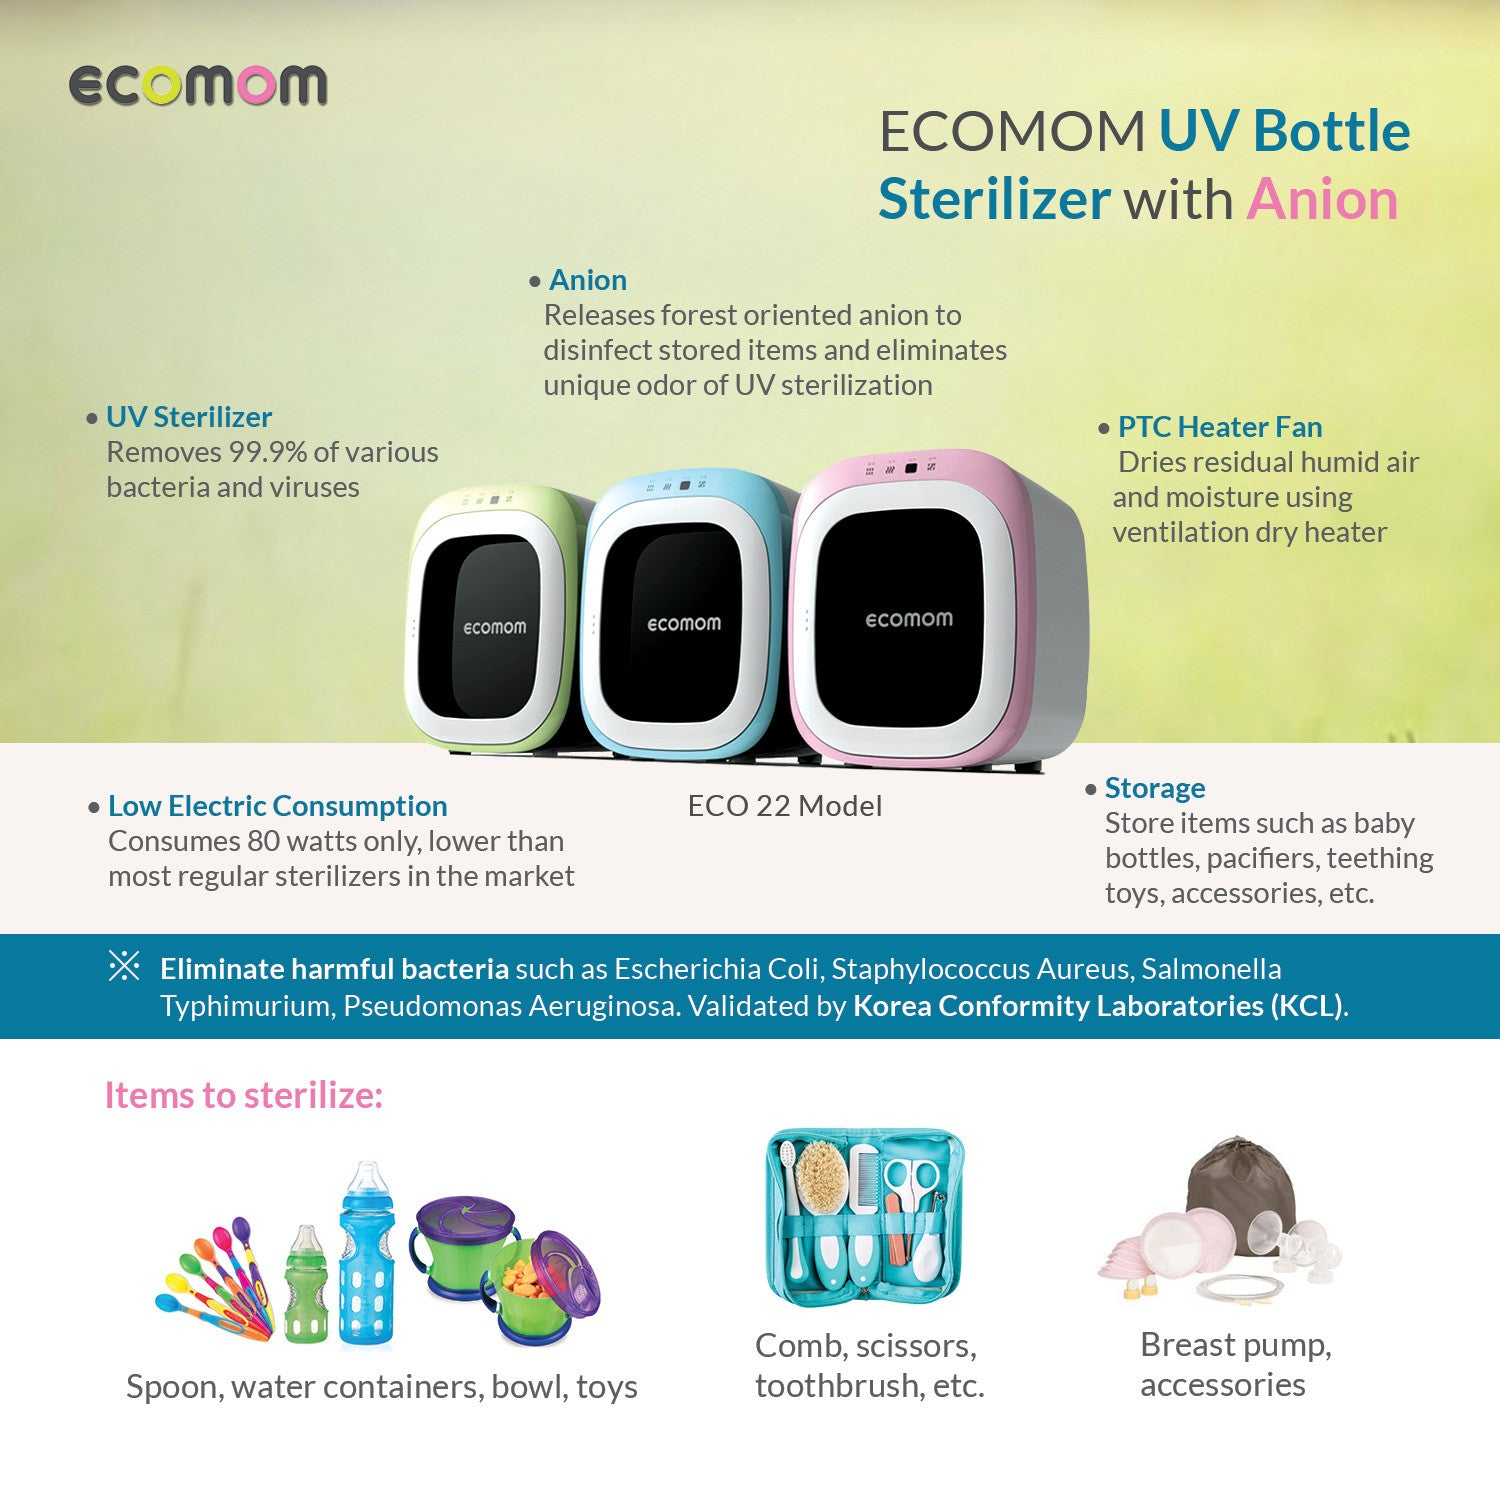 Ecomom ECO22 UV Sterilizer and Dryer with Anion